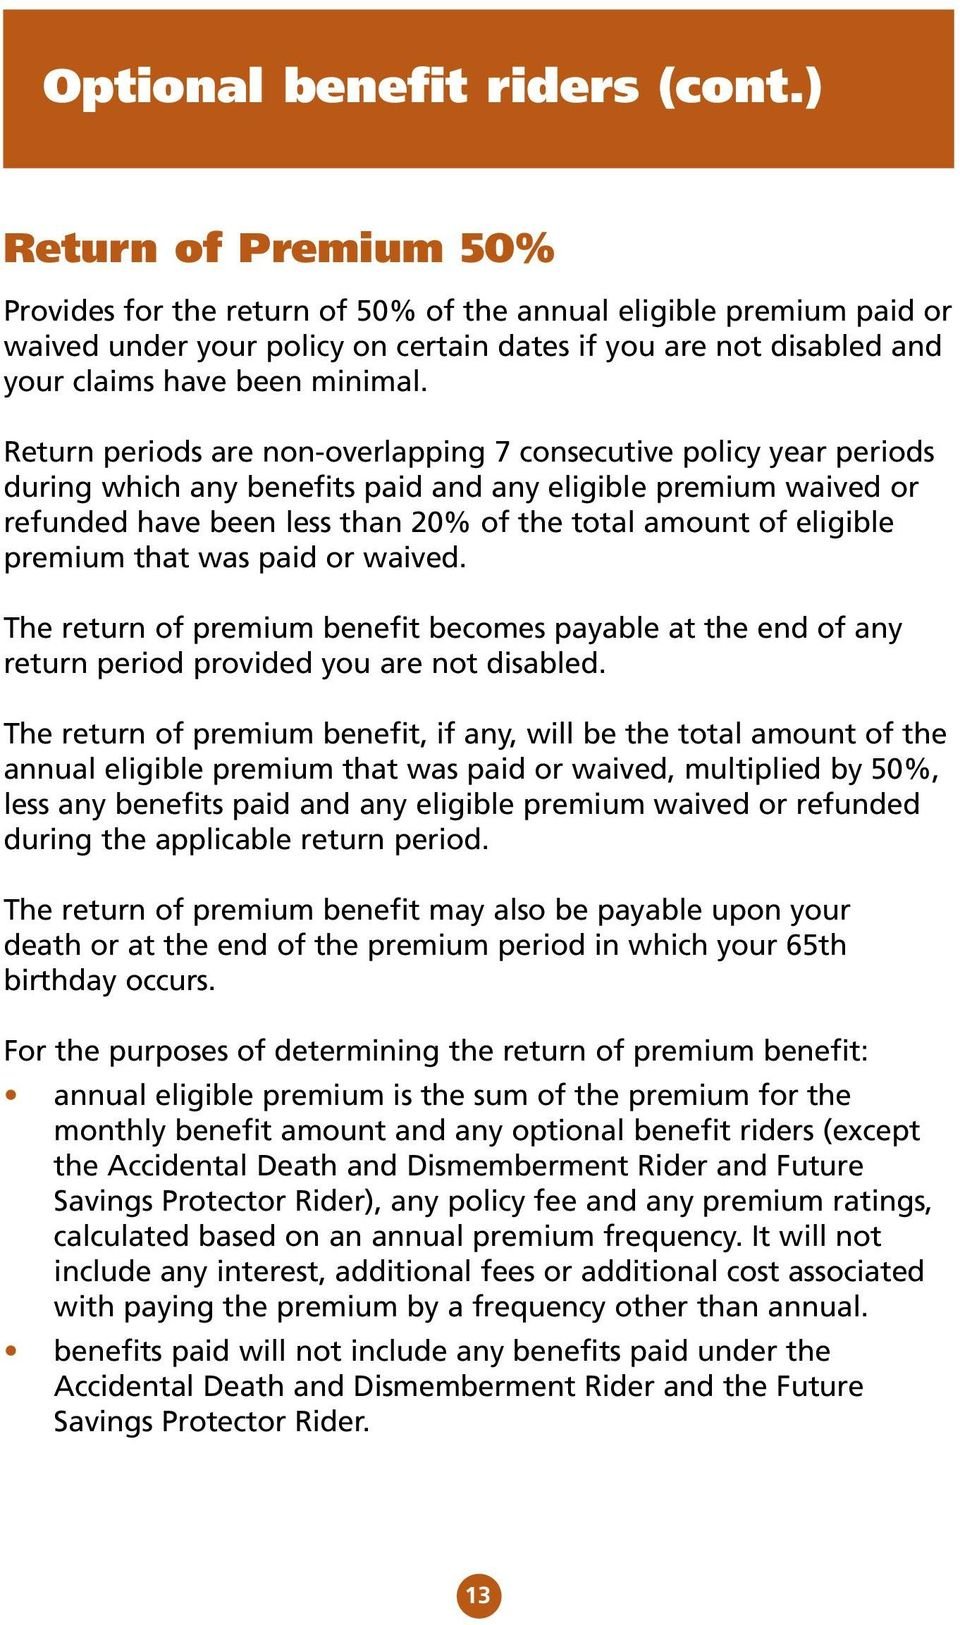 Return periods are non-overlapping 7 consecutive policy year periods during which any benefits paid and any eligible premium waived or refunded have been less than 20% of the total amount of eligible